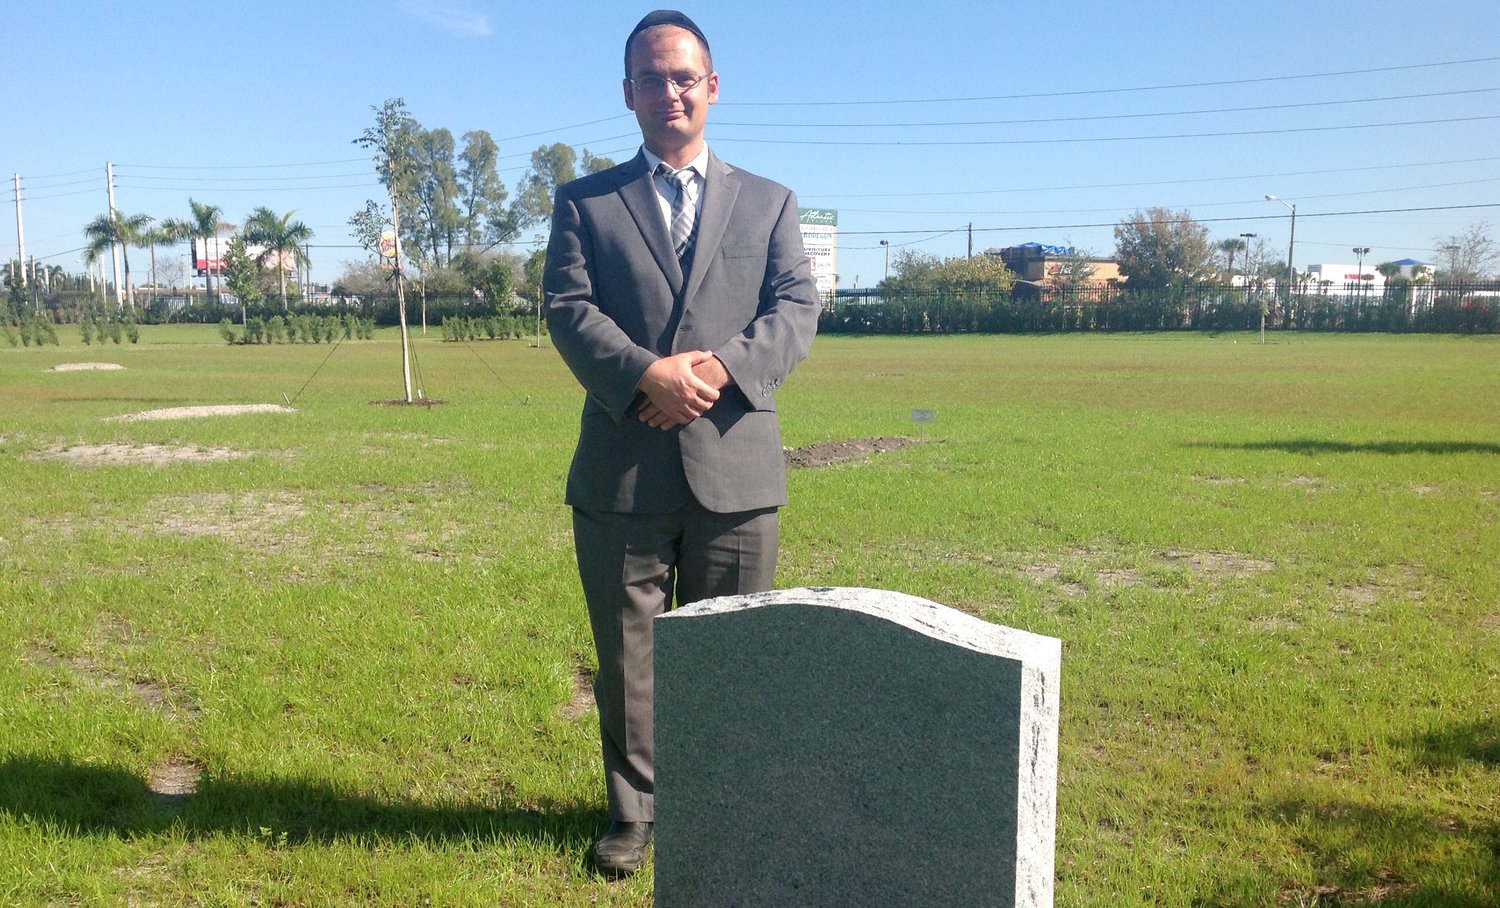 Rabbi Jay Lyons, founder of the South Florida Jewish Cemetery, wants to persuade local Jews to choose traditional burial as opposed to cremation.